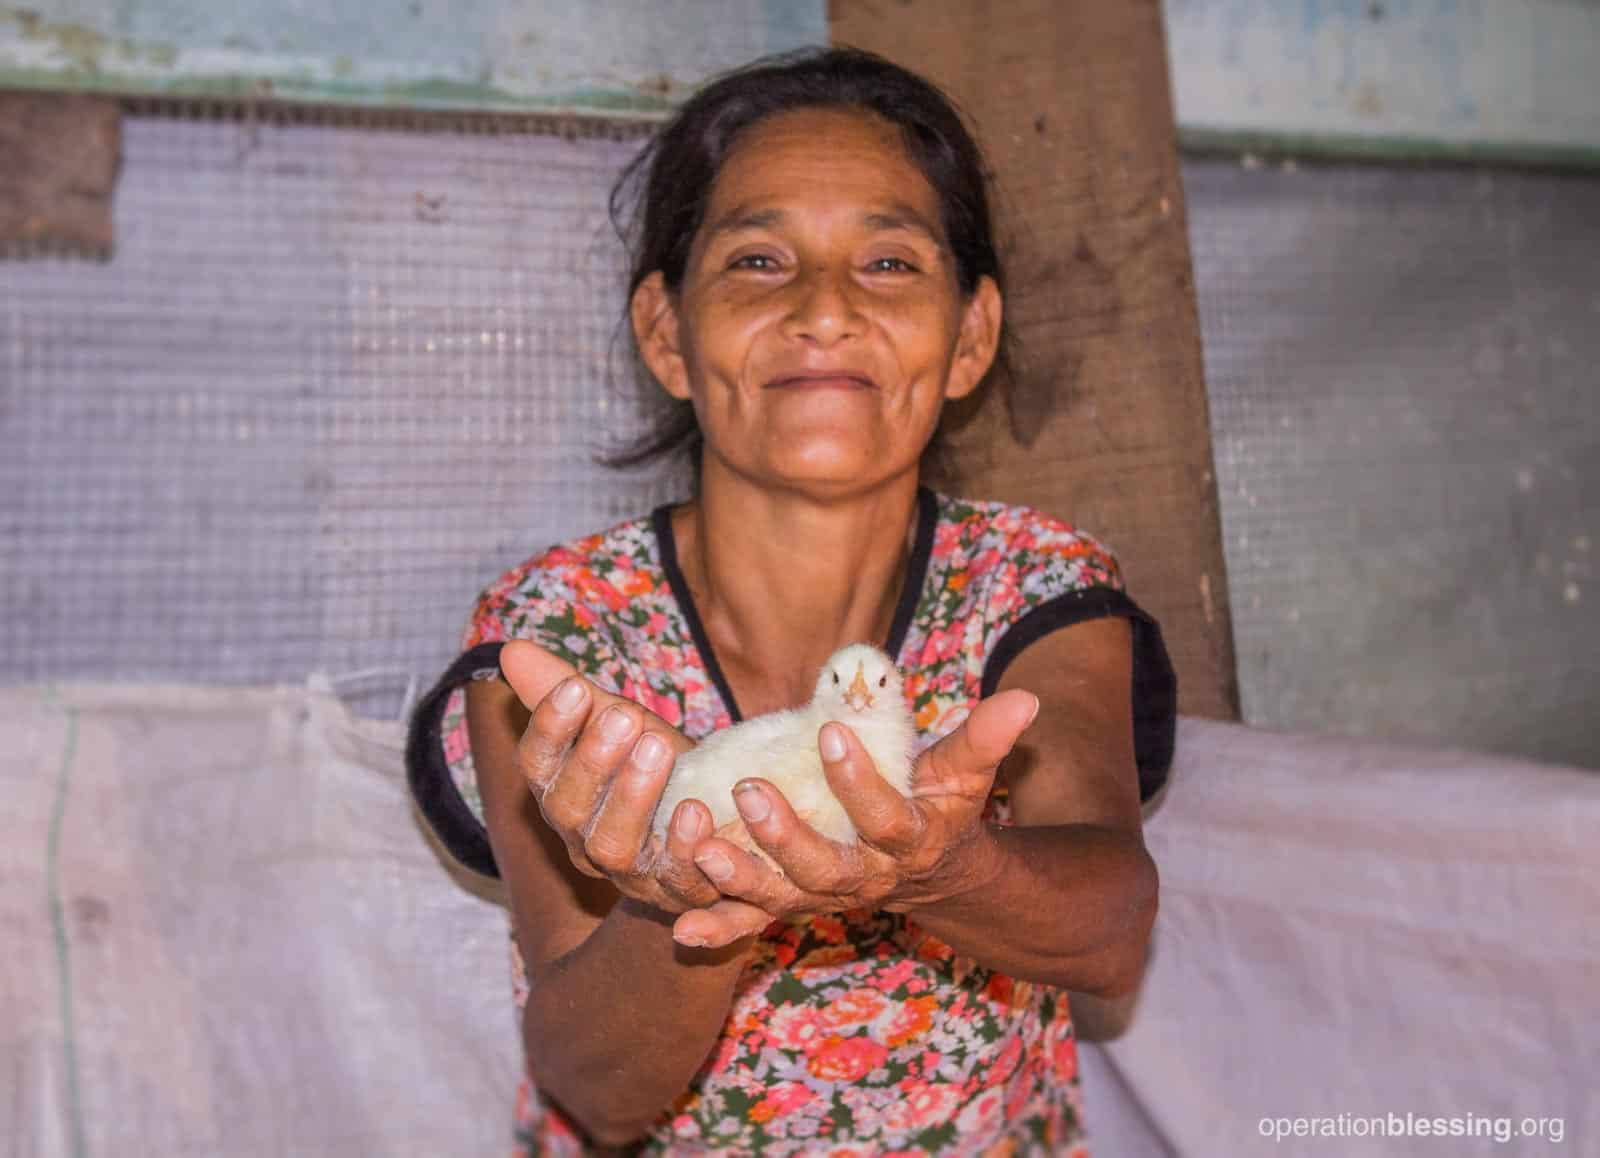 Single mother Ermelinda is part of a poultry project in Latin America that helps keep her family fed.